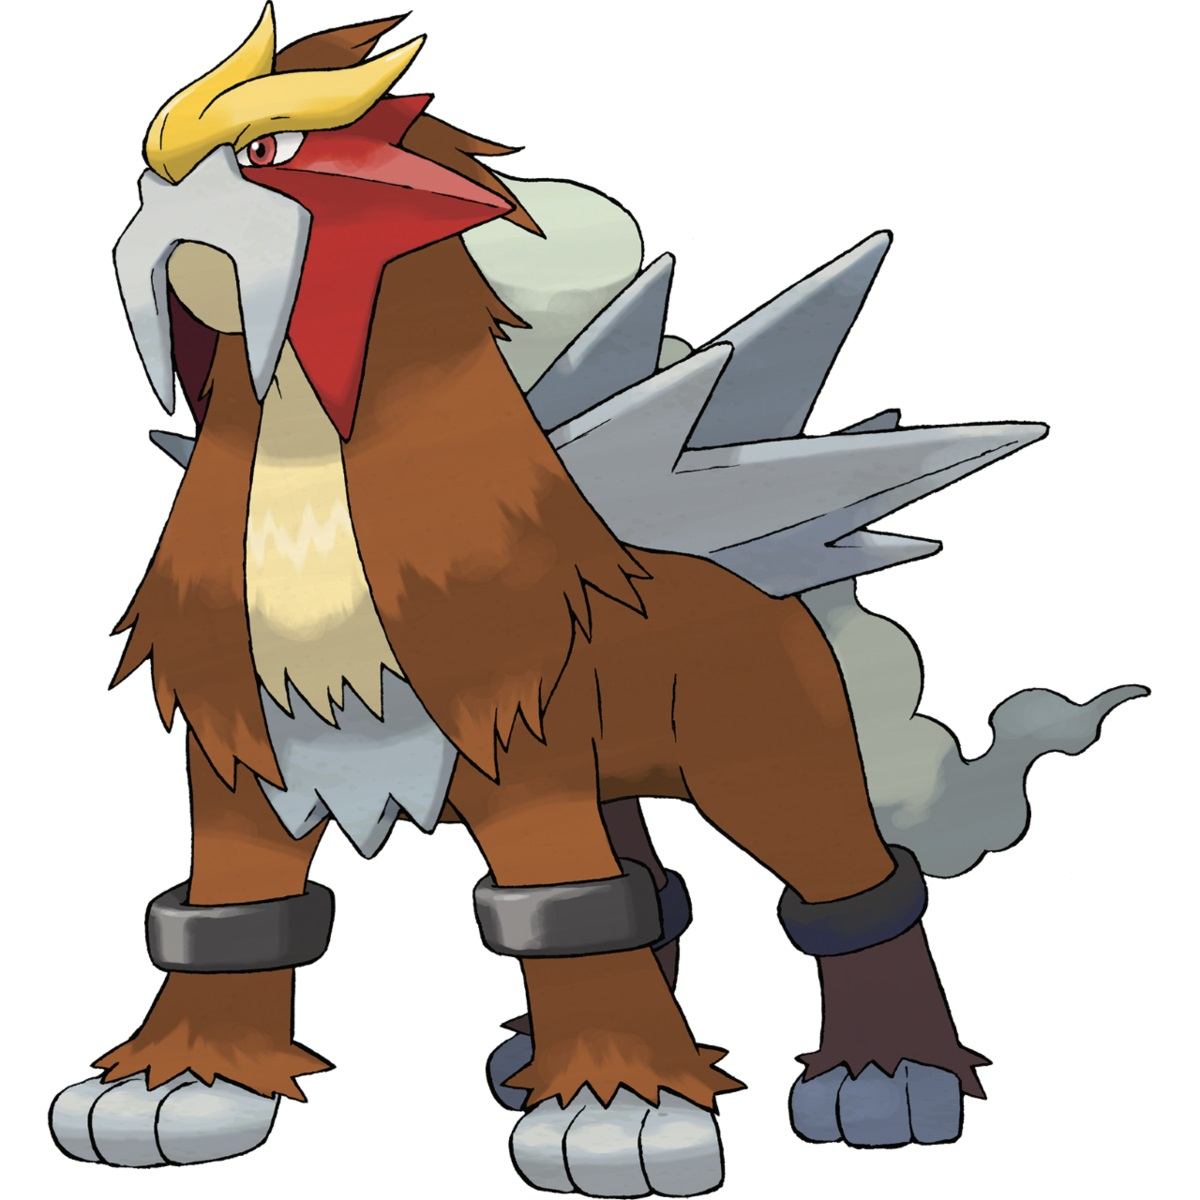 The Legendary Shadow Pokemon Entei from Giovanni Pokemon Go team